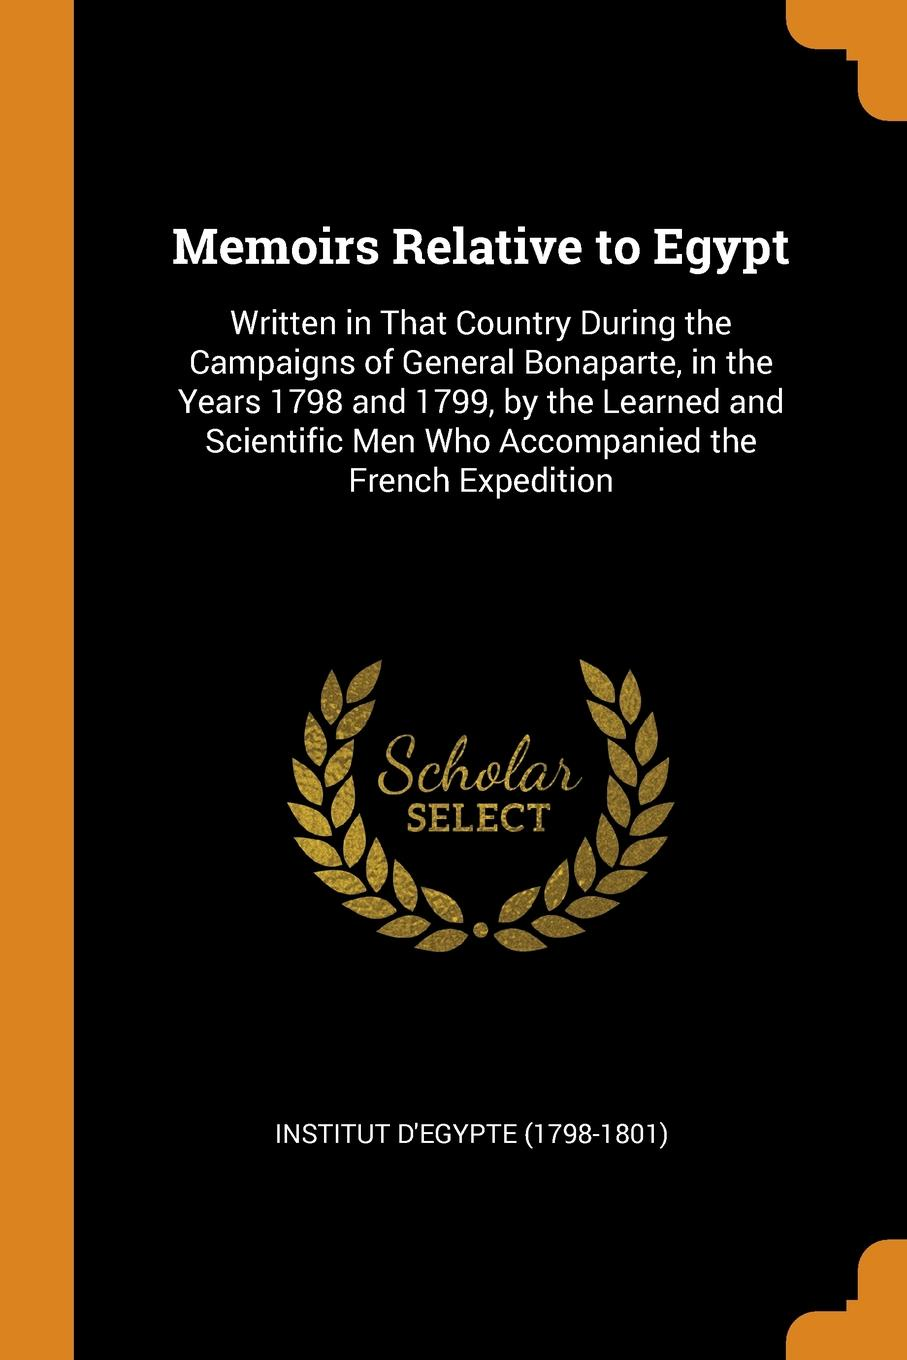 Memoirs Relative to Egypt. Written in That Country During the Campaigns of General Bonaparte, in the Years 1798 and 1799, by the Learned and Scientific Men Who Accompanied the French Expedition This work has been selected by scholars as being culturally important...